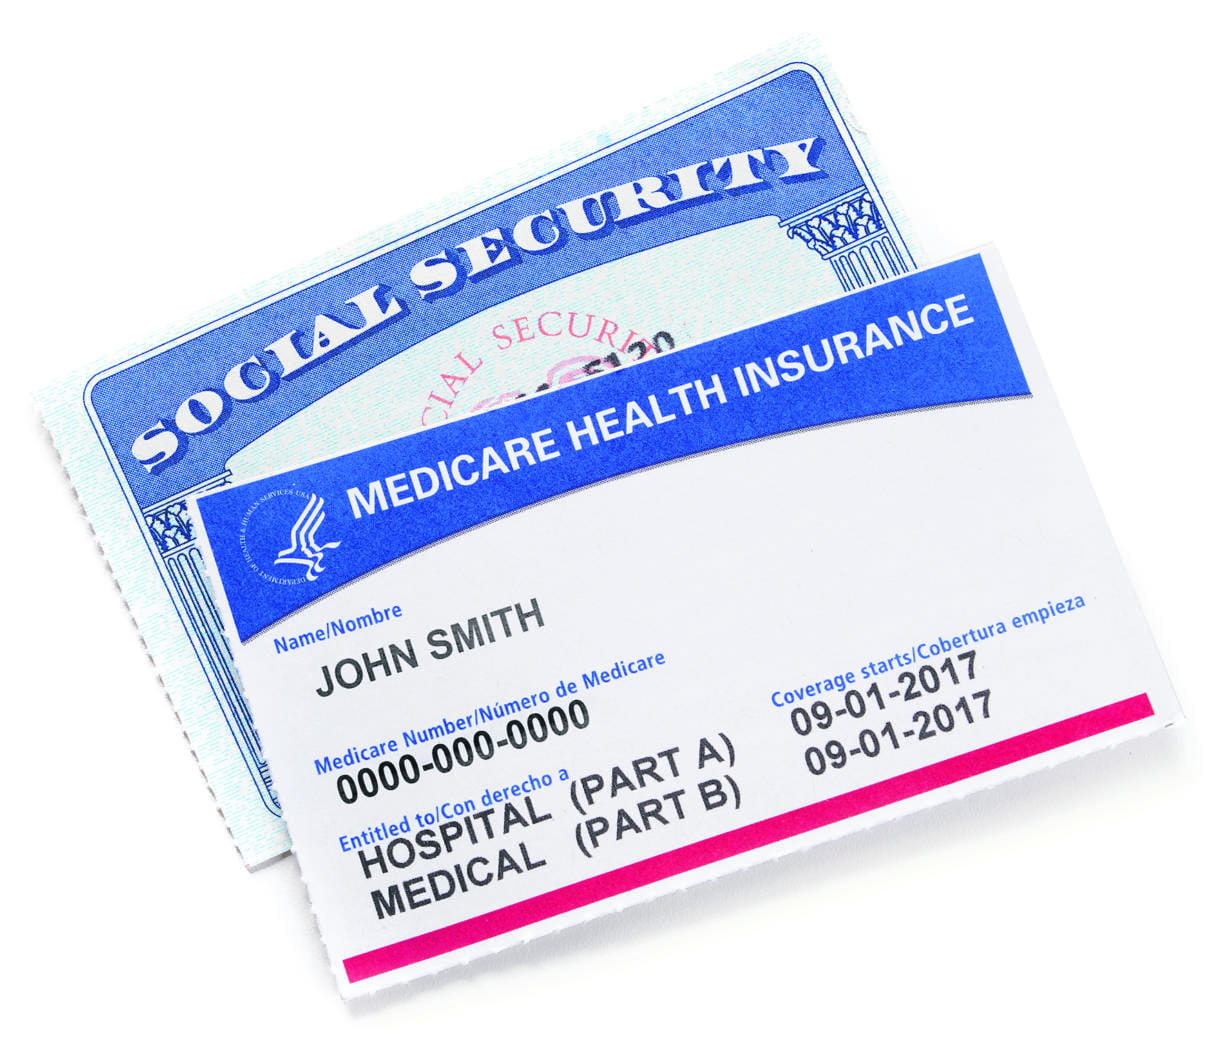 Medicare is a national health insurance program provided by the United States for seniors 65 and older. It began in 1966. Since then it's gotten a lot more confusing, Your Insurance Gal is here to help add some clarity.